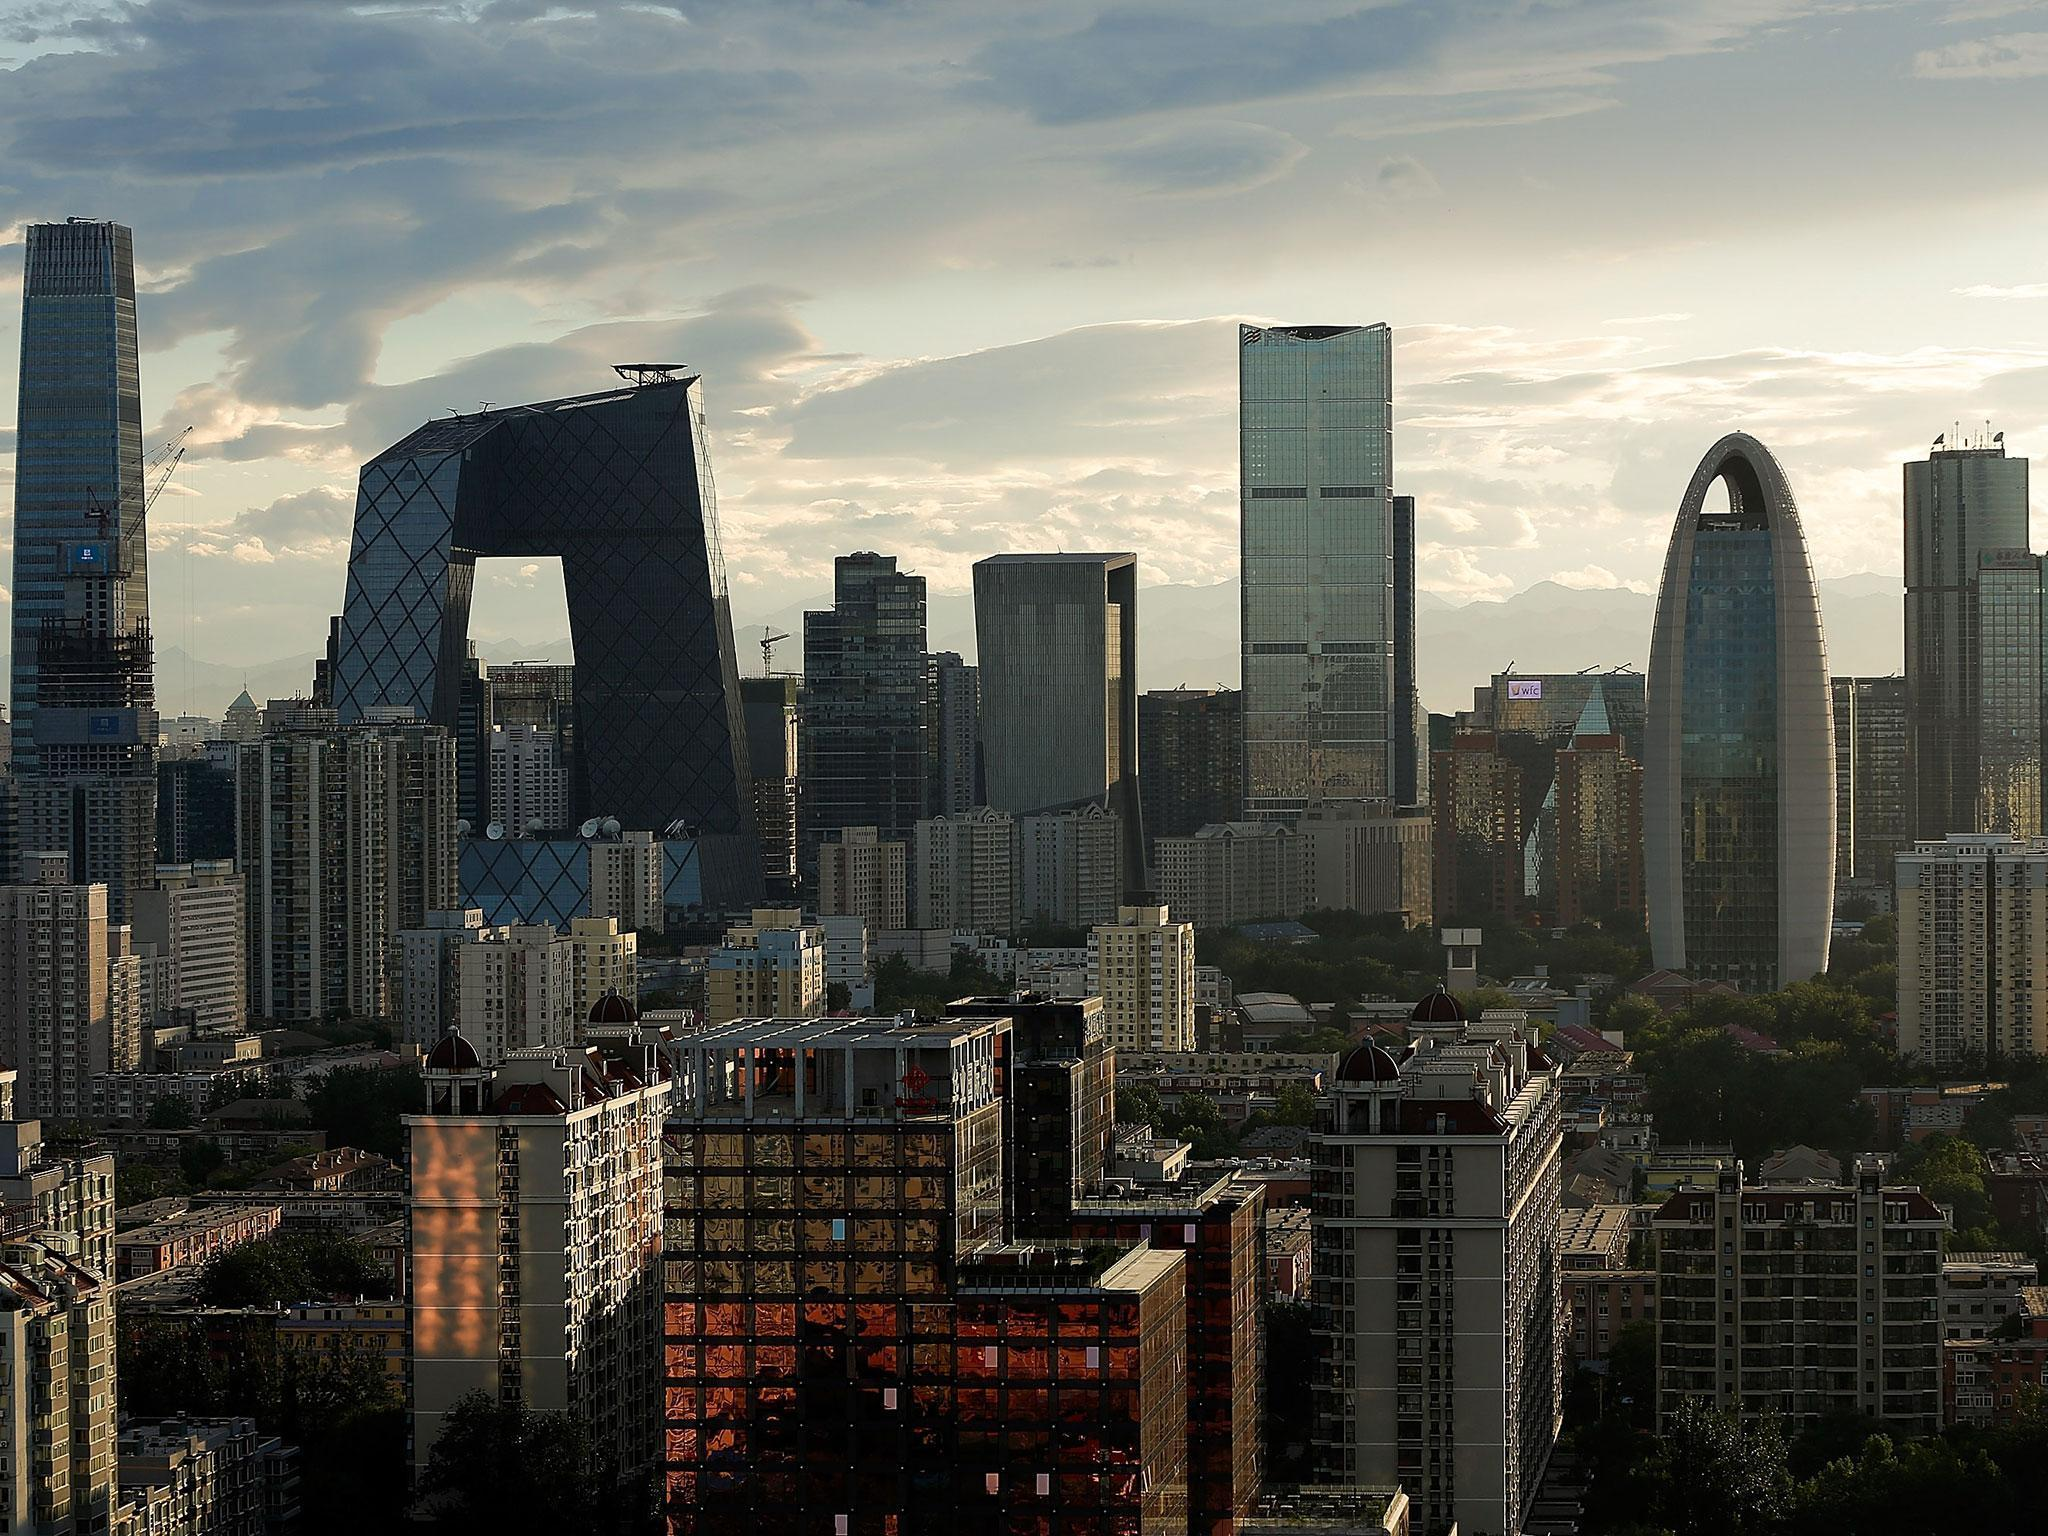 Beijing is sinking into the ground  says report   The Independent